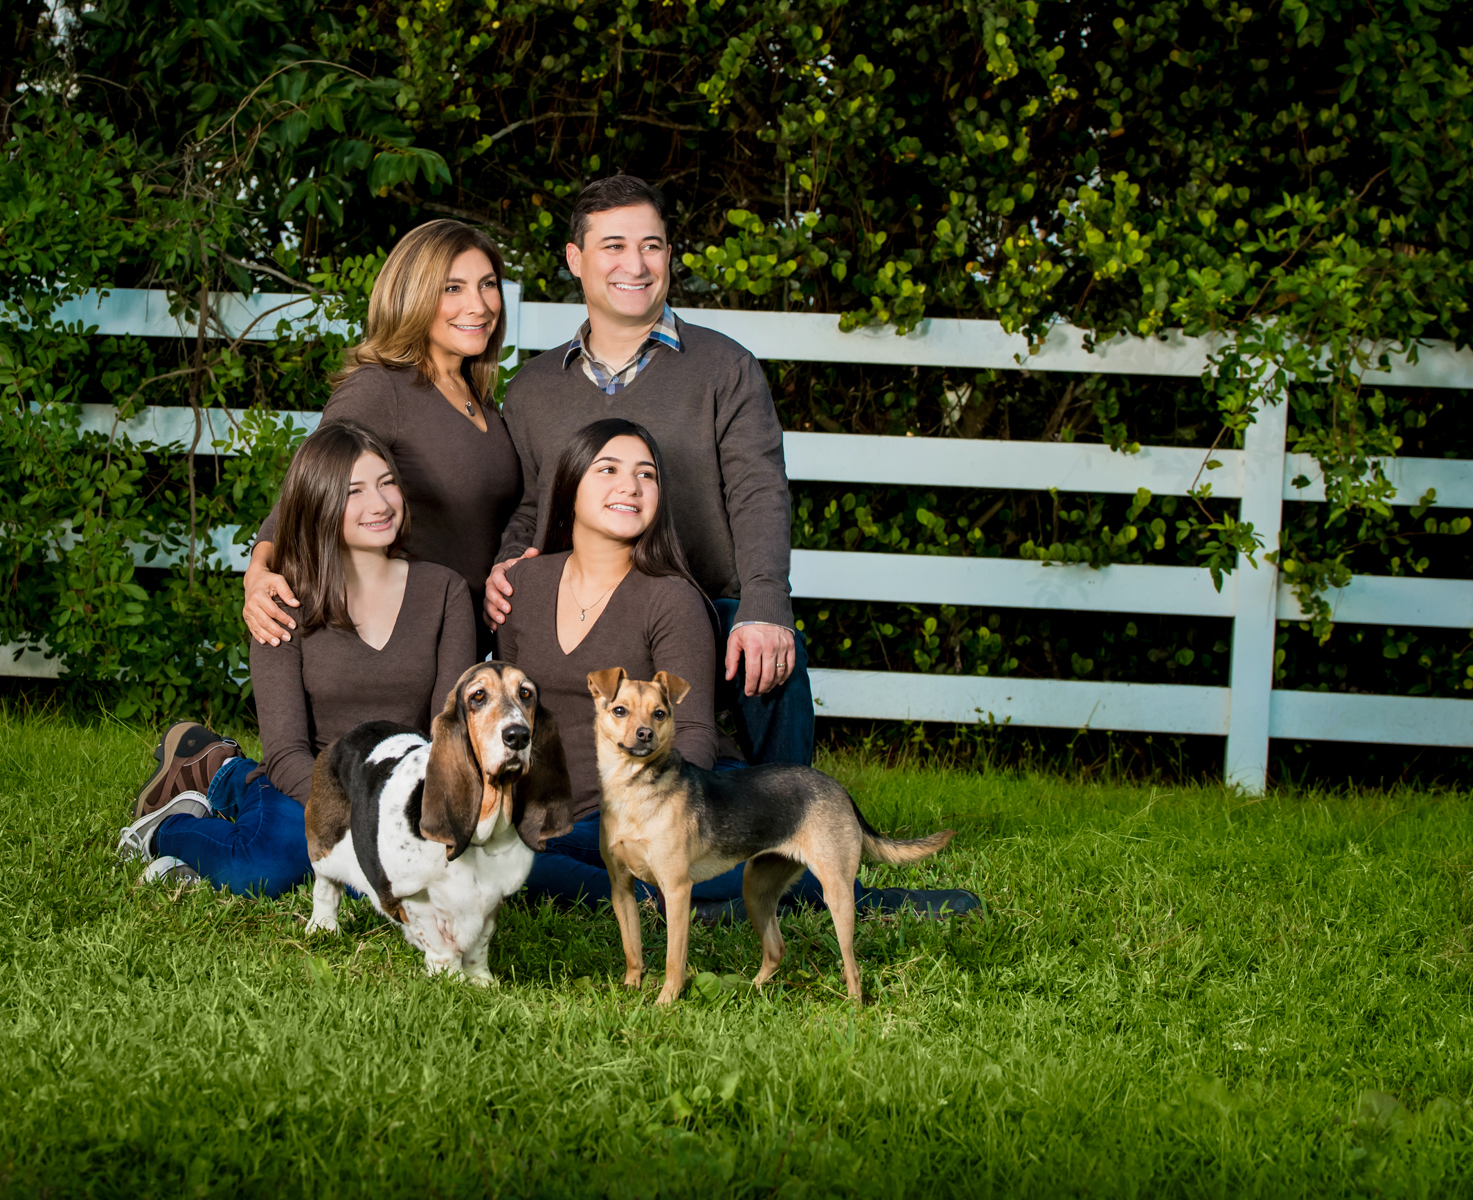 Specializing in family photos on location or in the studio.